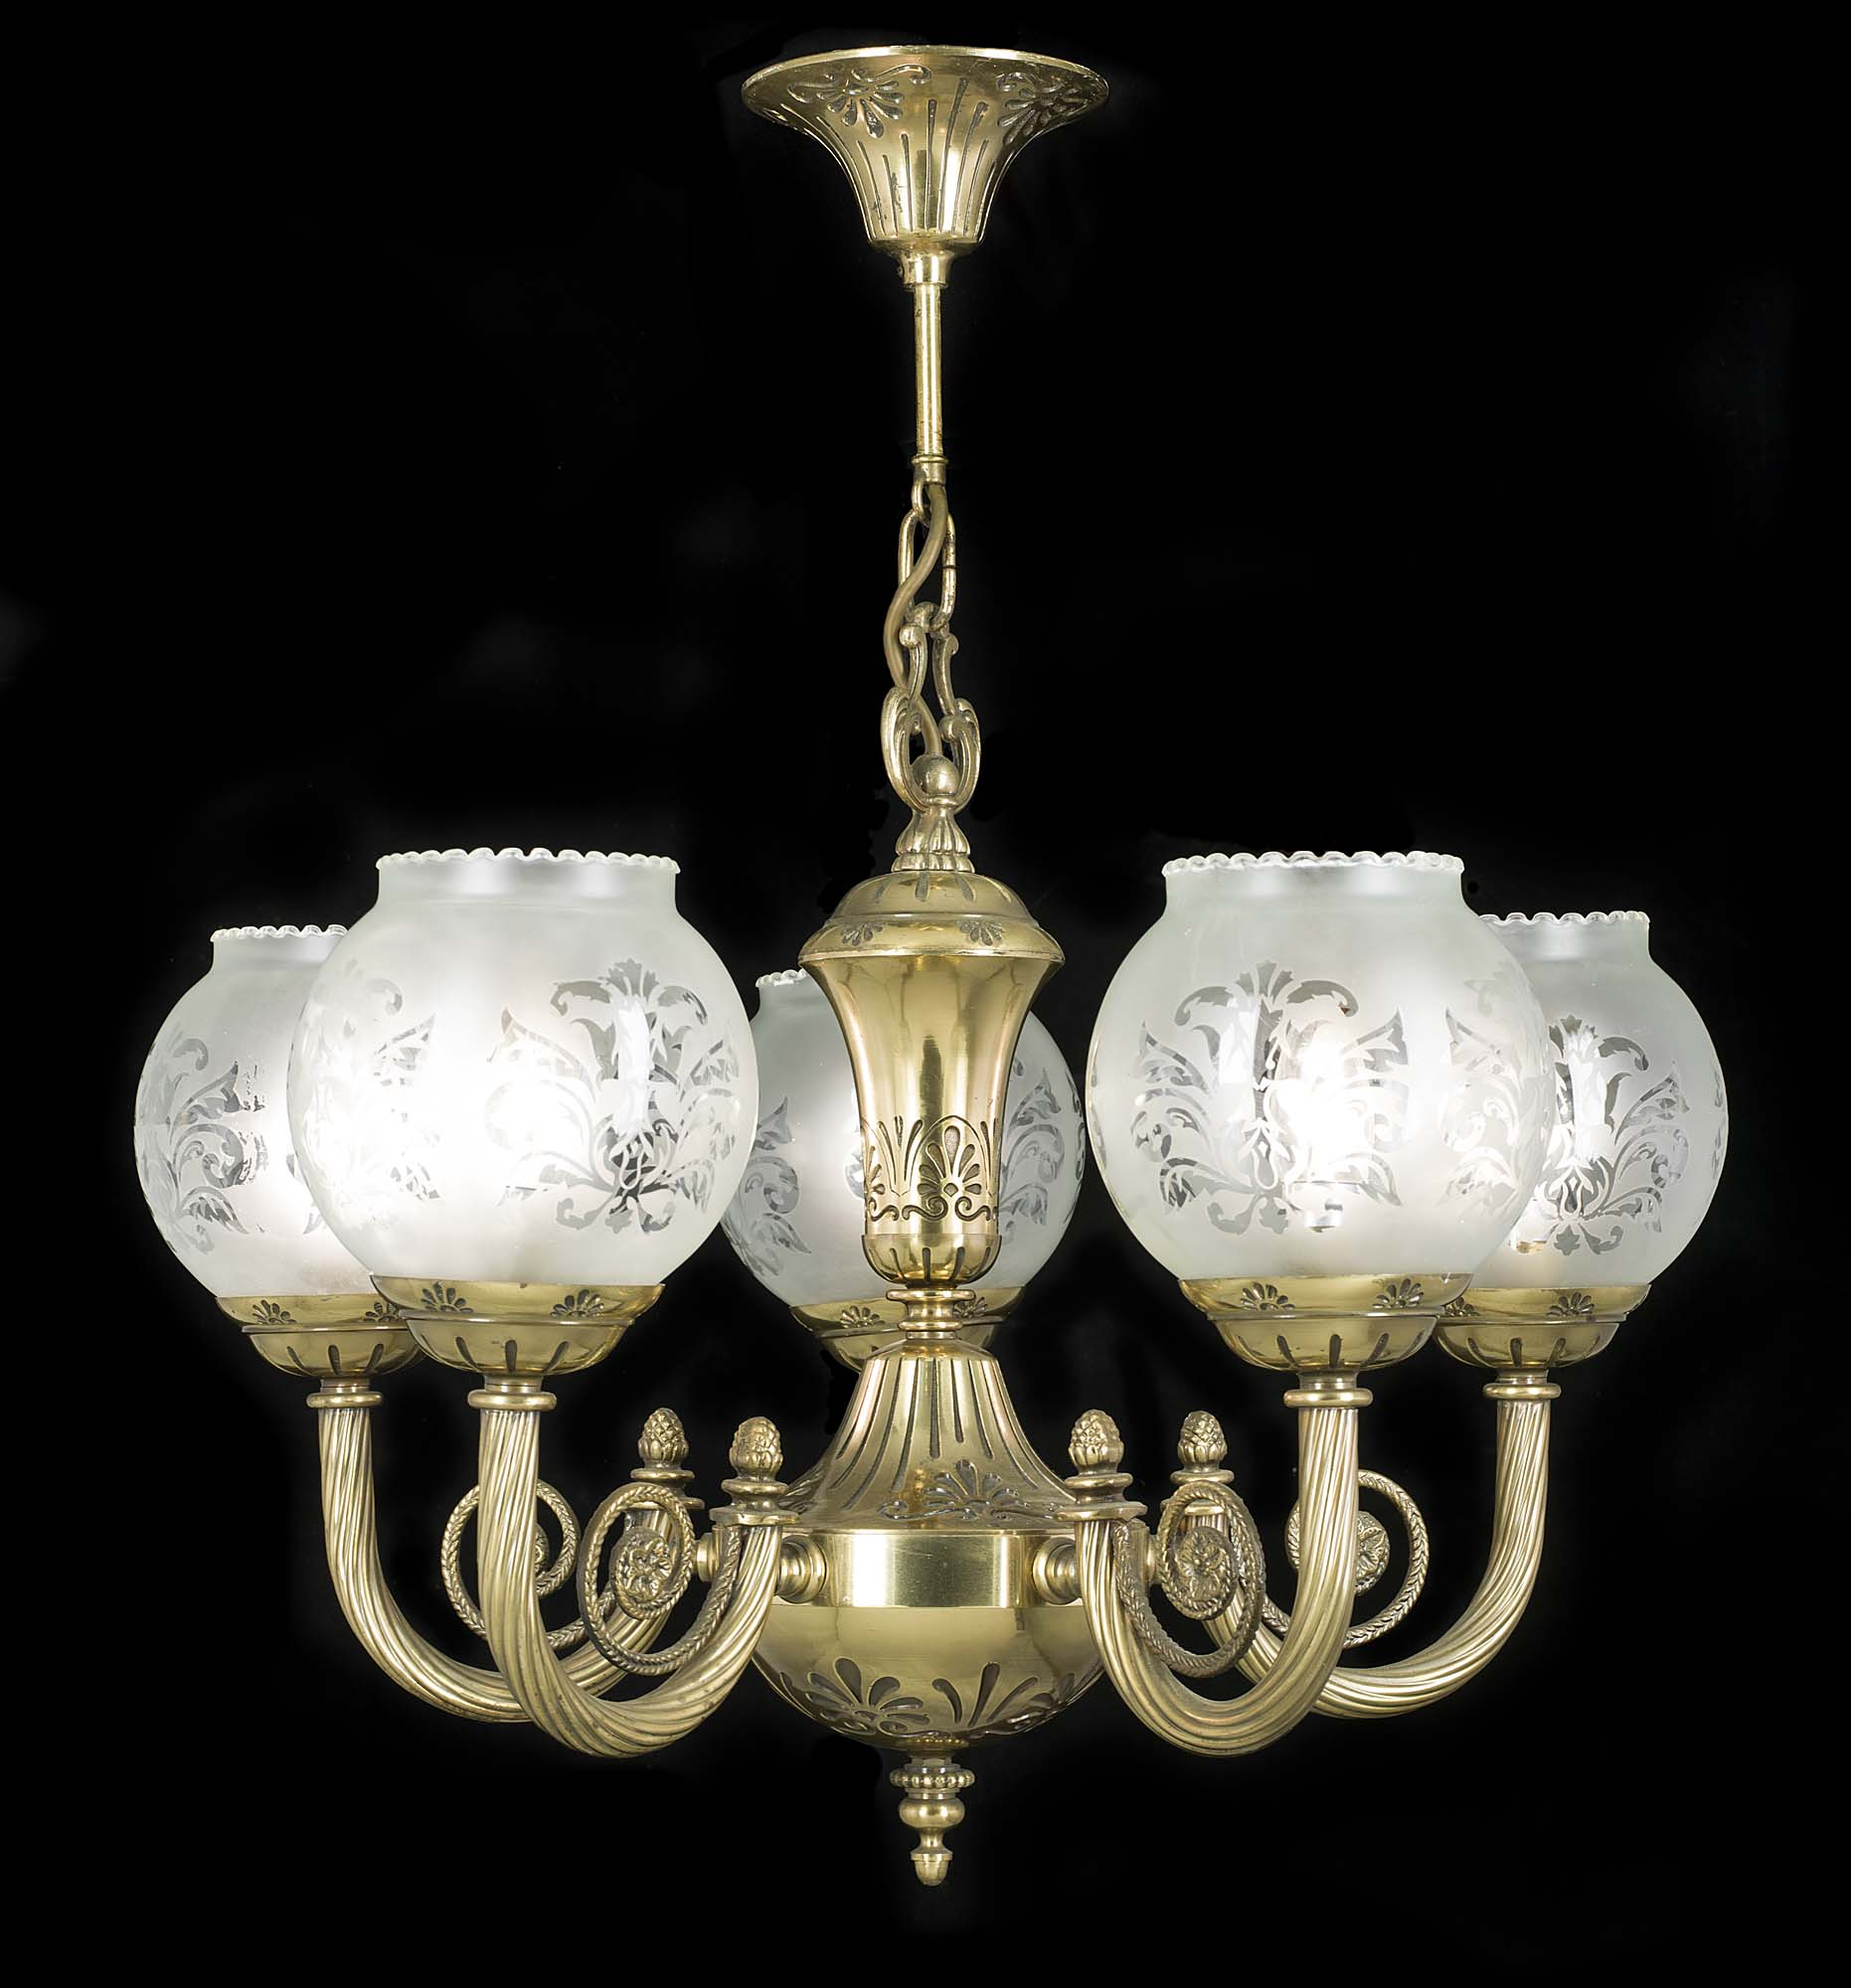 A 20th century five branch gilt brass Victorian style chandelier